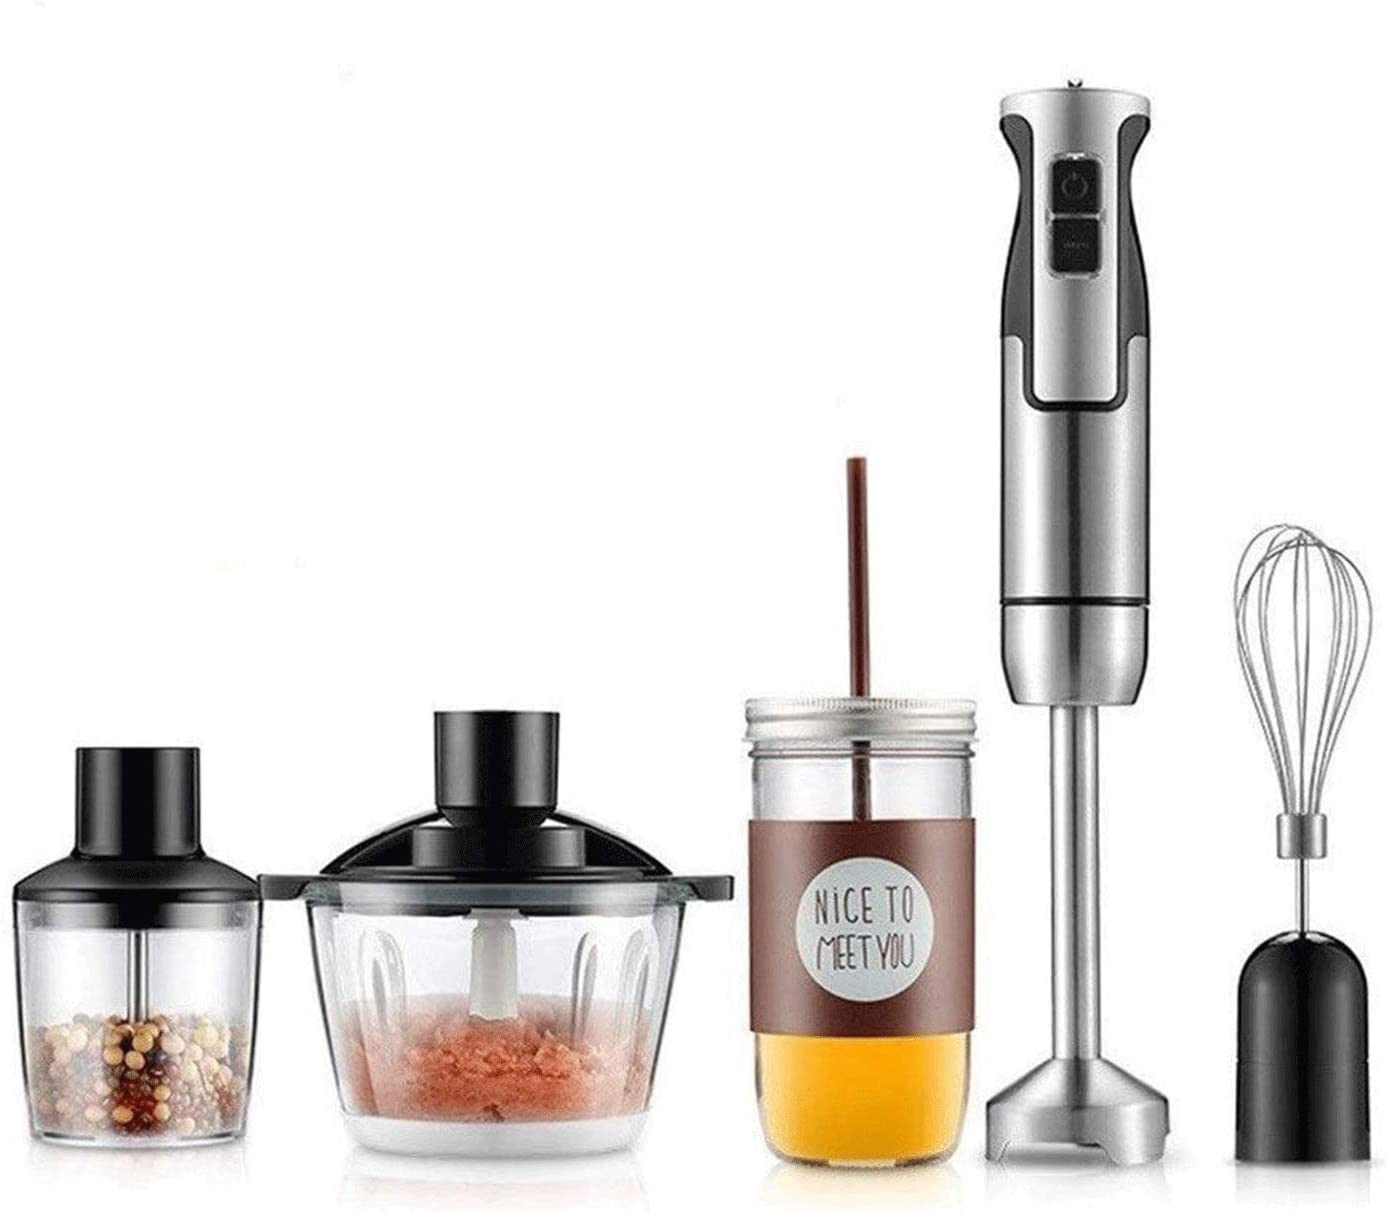 XIXIDIAN Multi-Purpose Hand Blender,12 Speed, 5-in-1 Multifunctional Hand Immersion Blender, 304 Stainless Steel Stick Blender, 500ml Food Processor, Whisk Attachment, BPA-Free